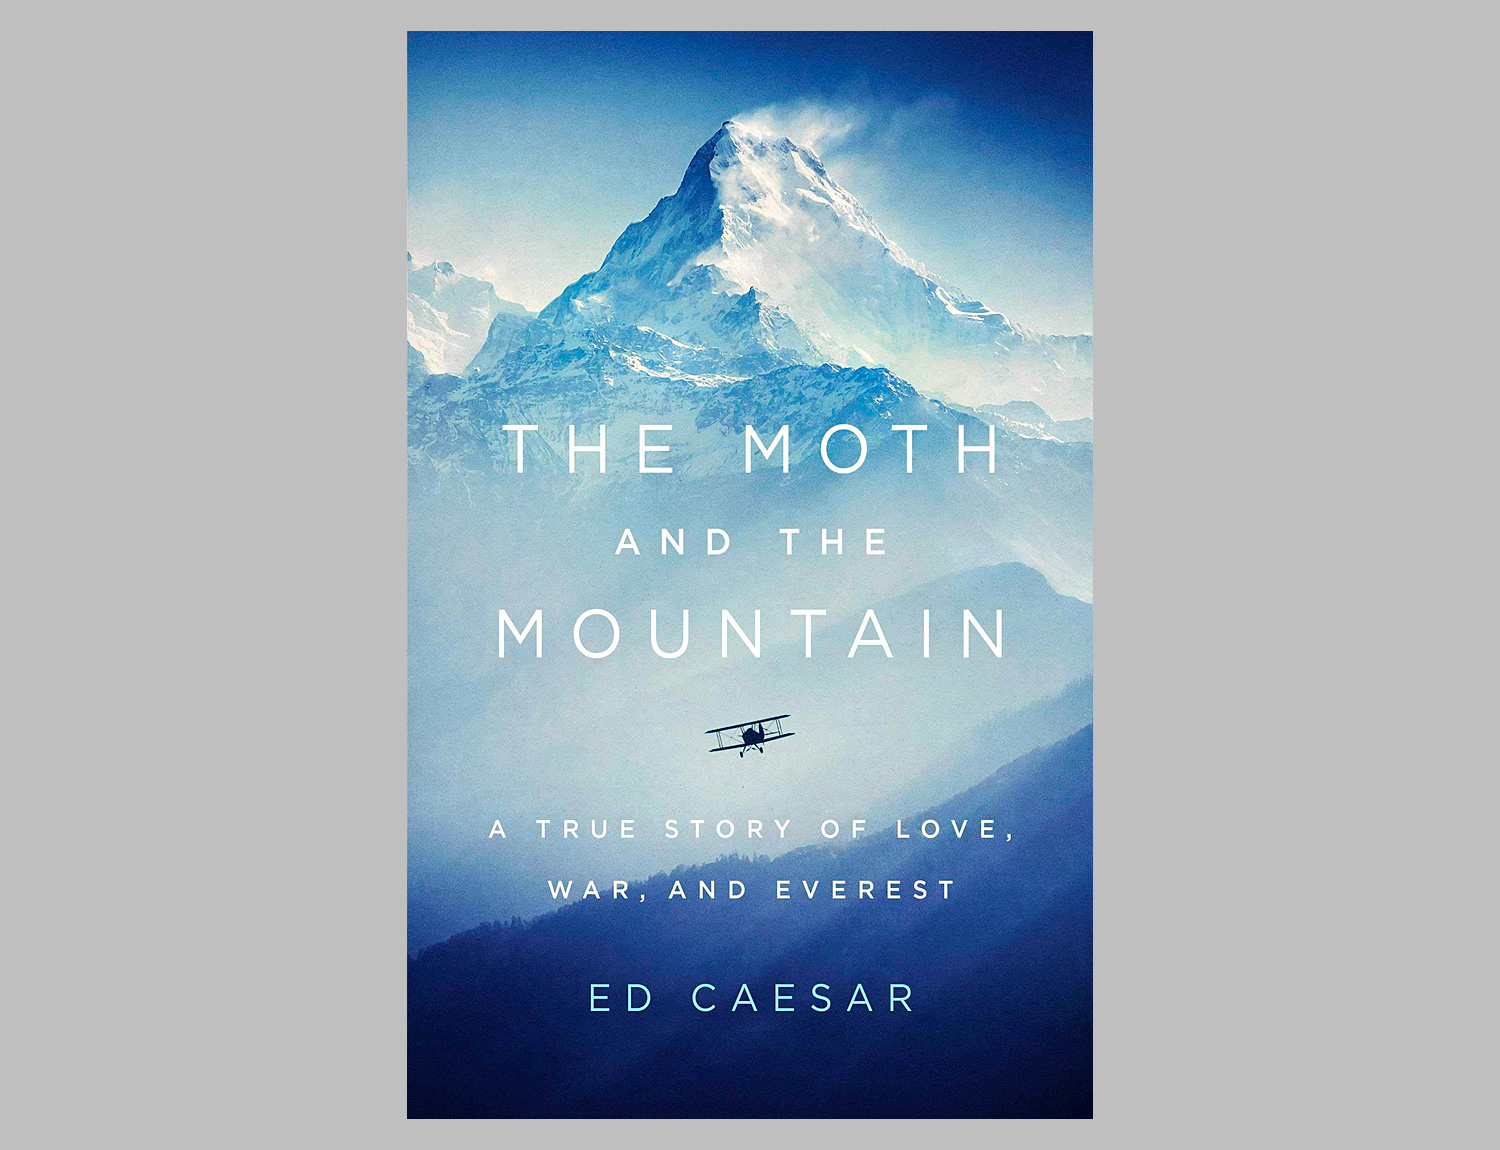 The Moth and the Mountain: A True Story of Love, War, and Everest at werd.com